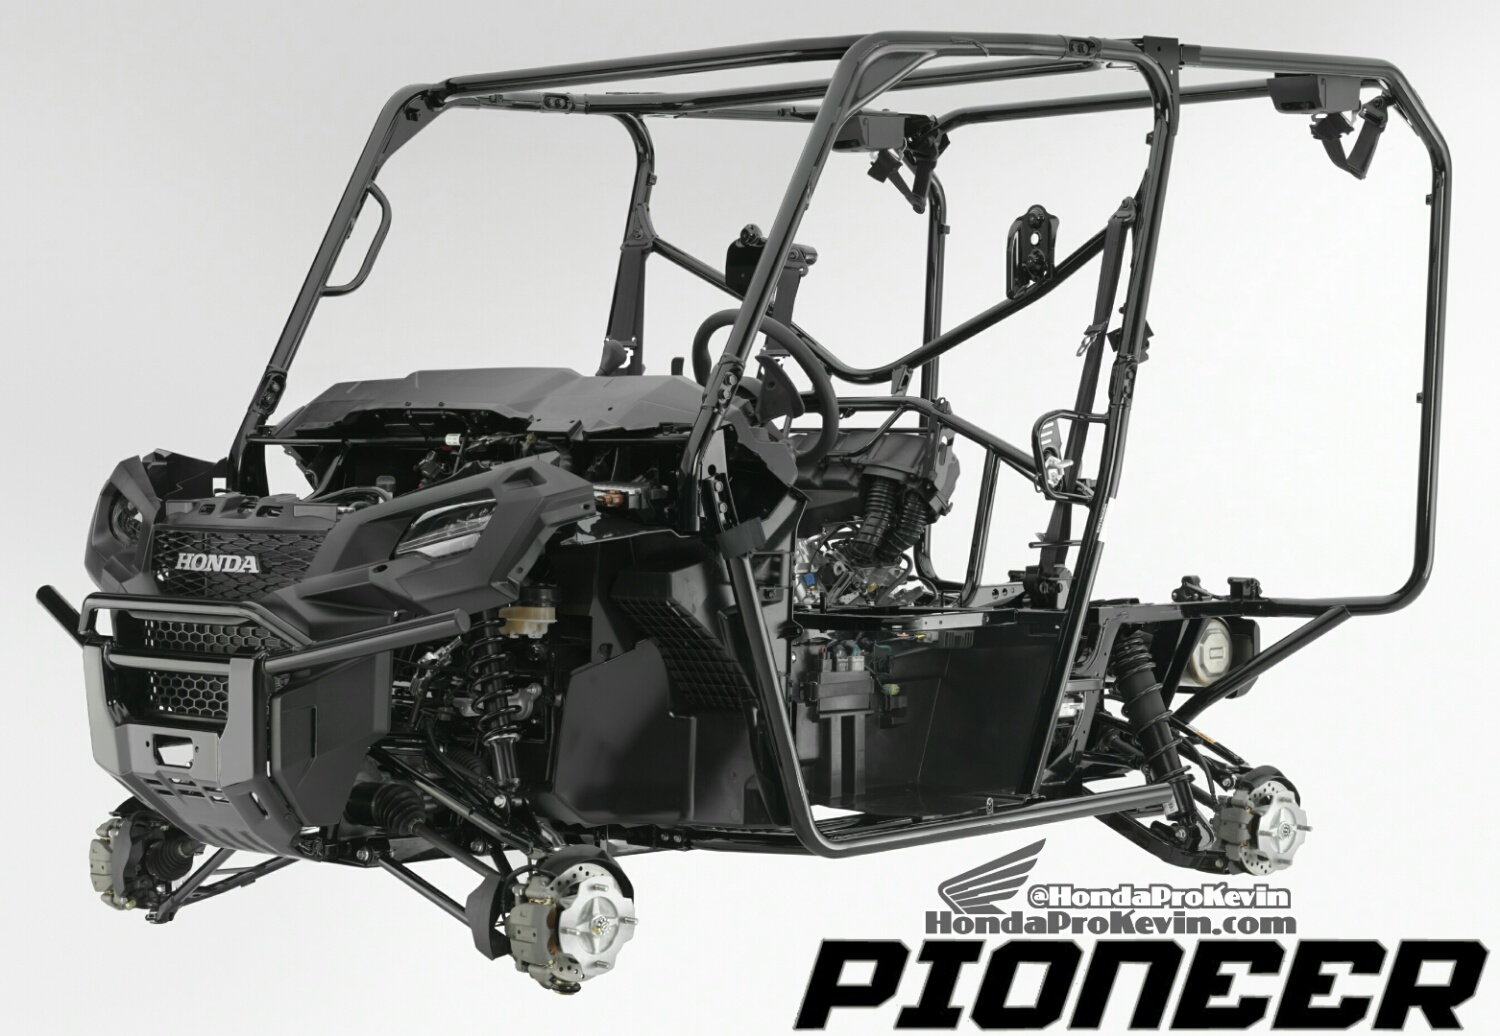 2017 Honda Pioneer 1000 Review Of Specs New Changes Base Model Wiring Harness Side By Atv Utv Sxs 4x4 Utility